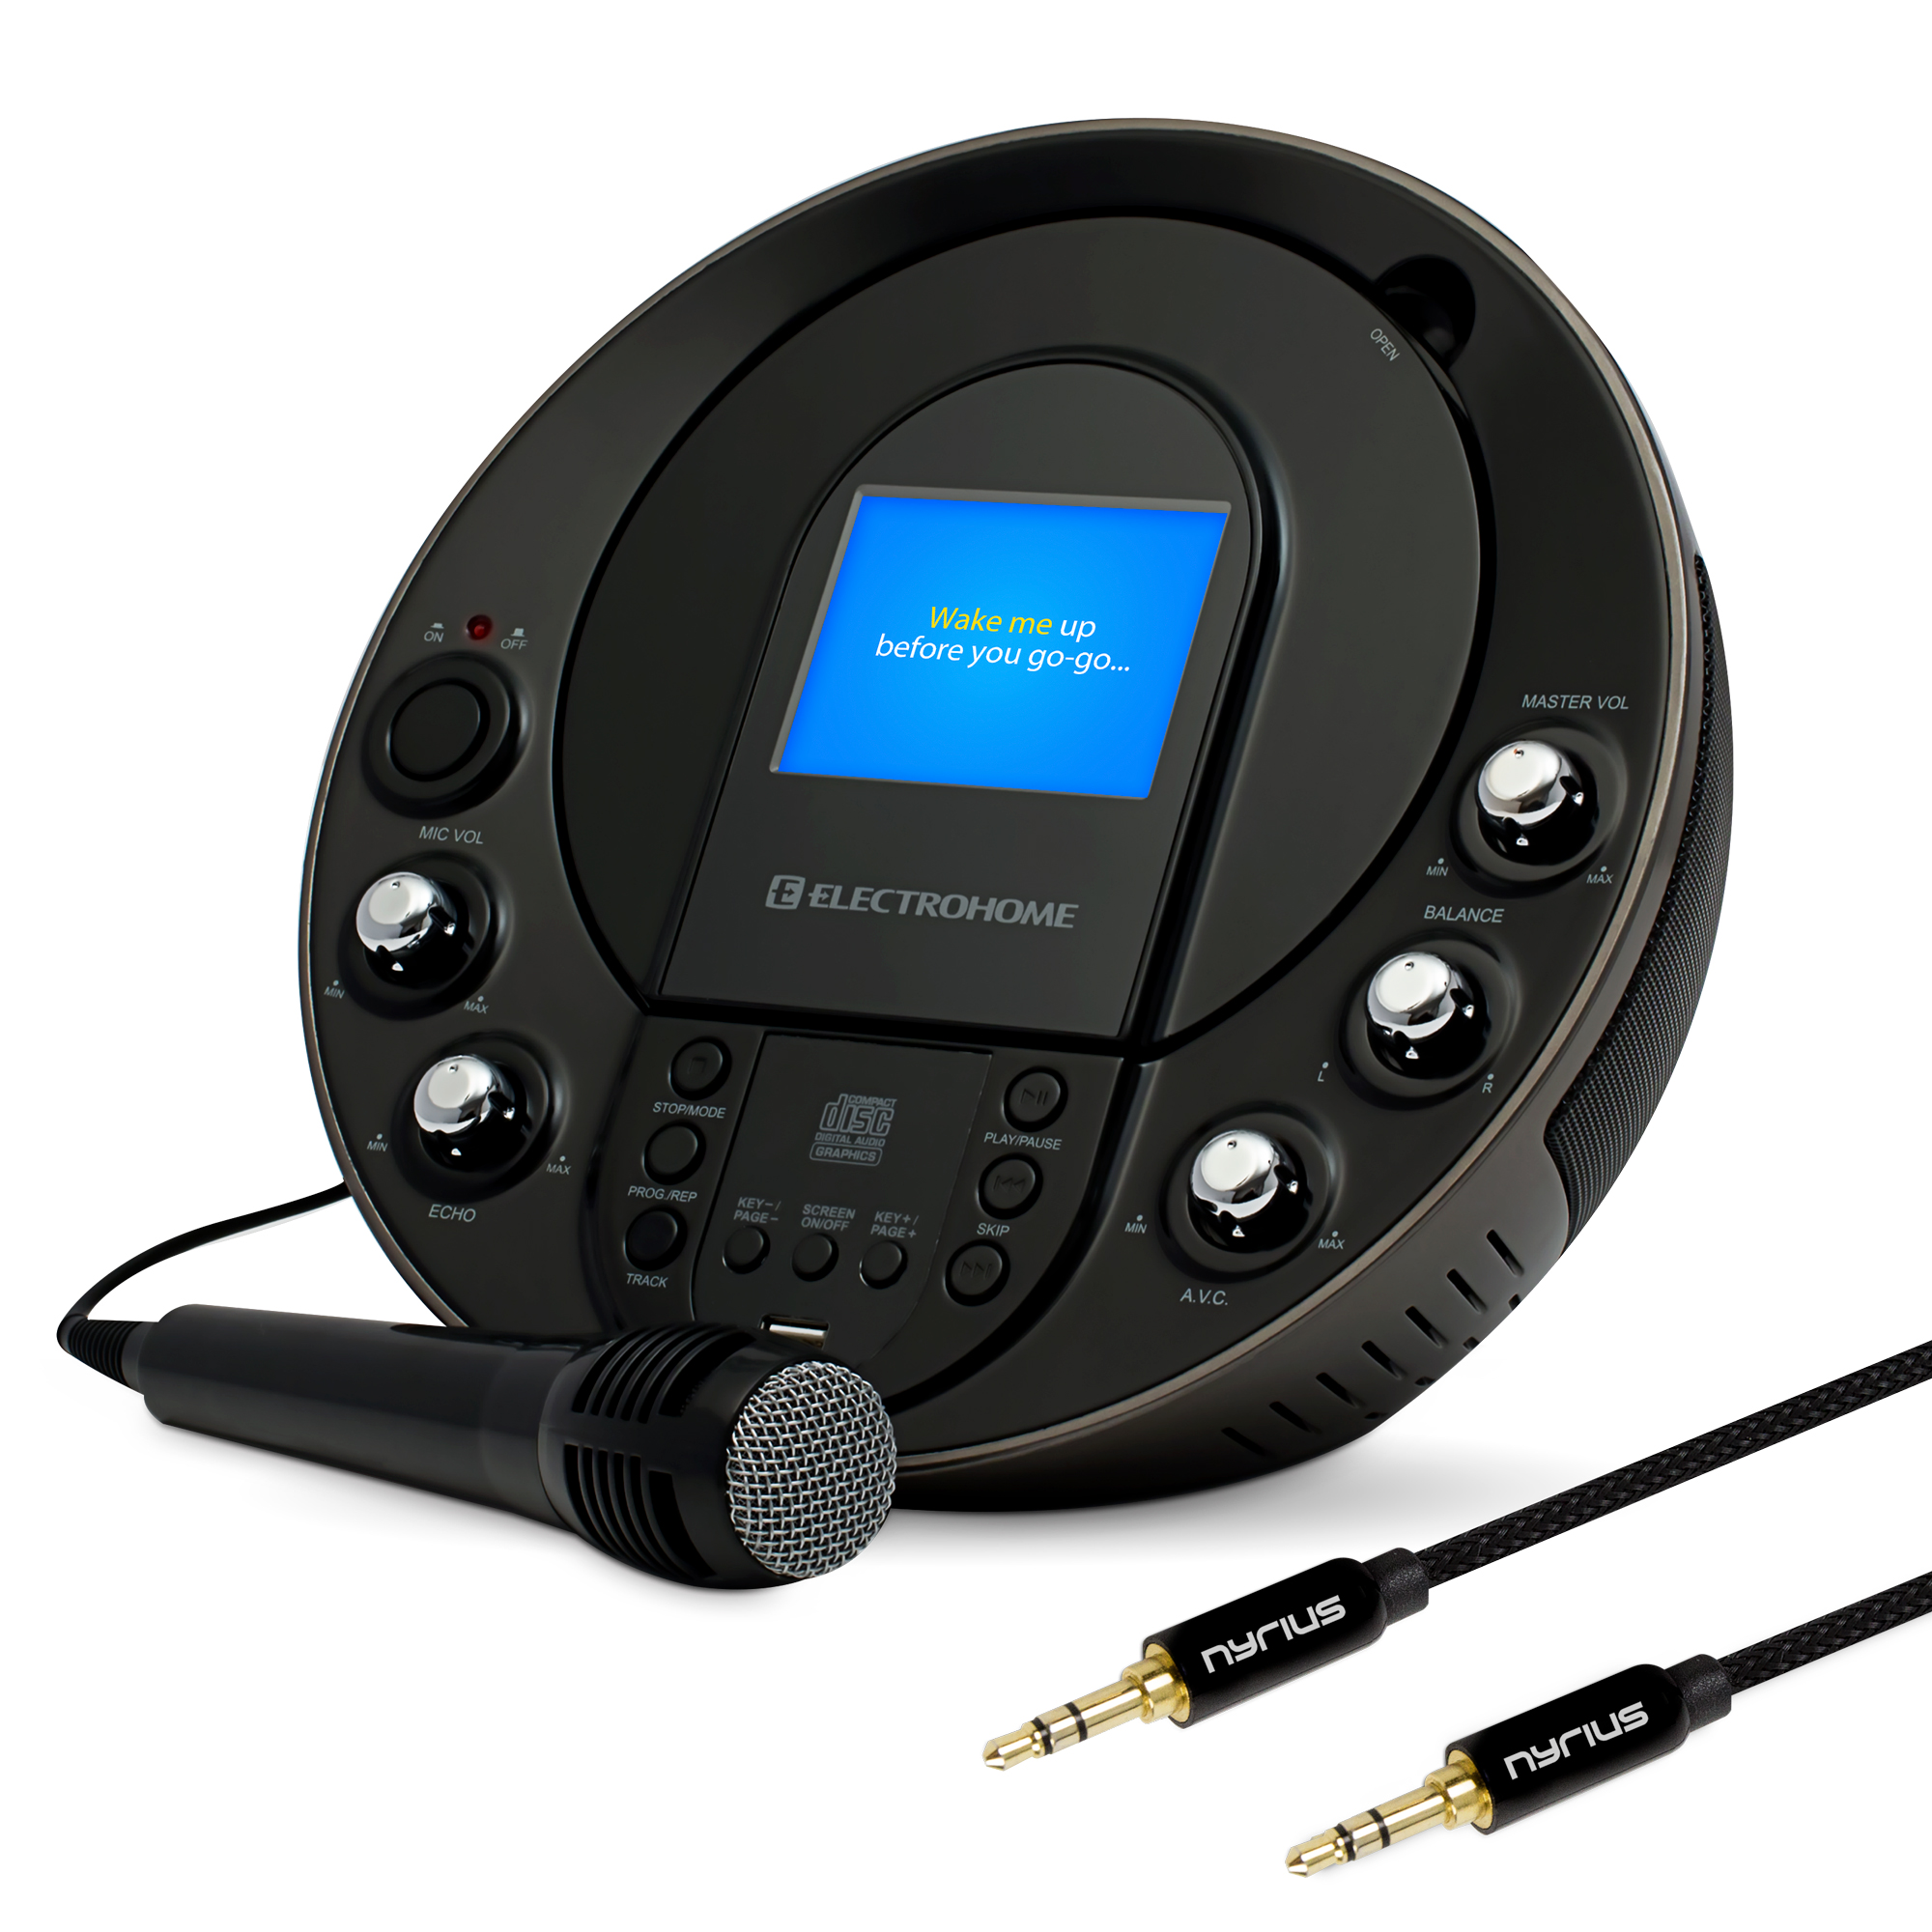 Electrohome Eakar535 Portable Karaoke Cd G Mp3g Player Speaker 3 5mm Audio Cable Wiring Scheme System With 35 Screen 2 Microphone Connections And Smartphone Tablets Mp3 Input Bonus 35mm Aux Stereo